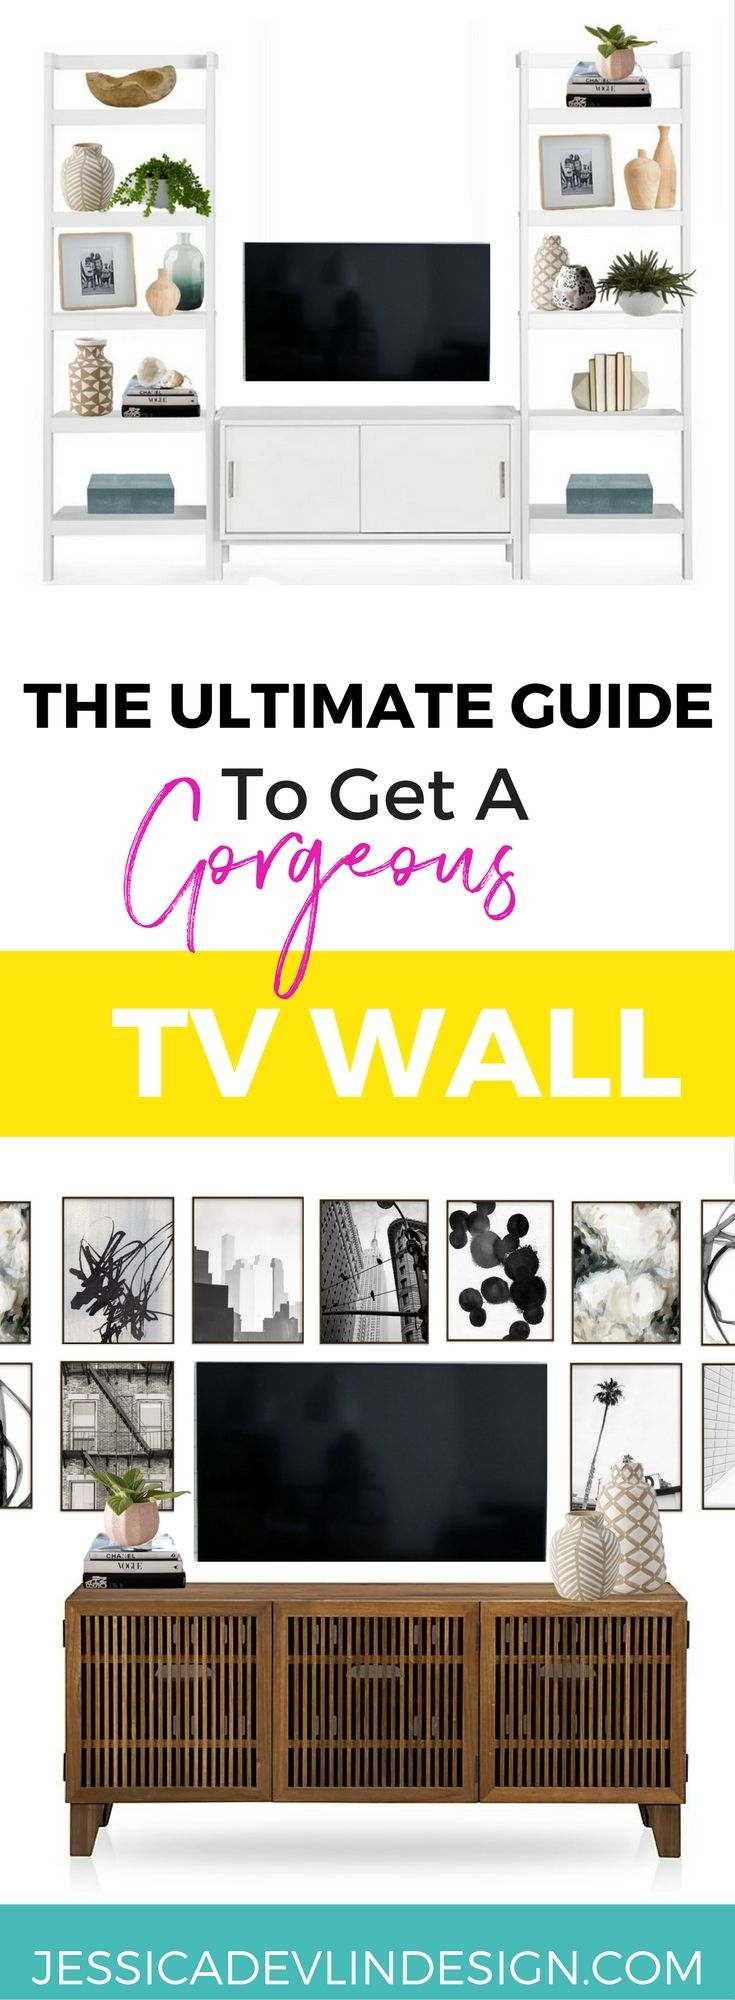 The Ultimate Guide To Decorating a TV Wall | For OUR Home ...